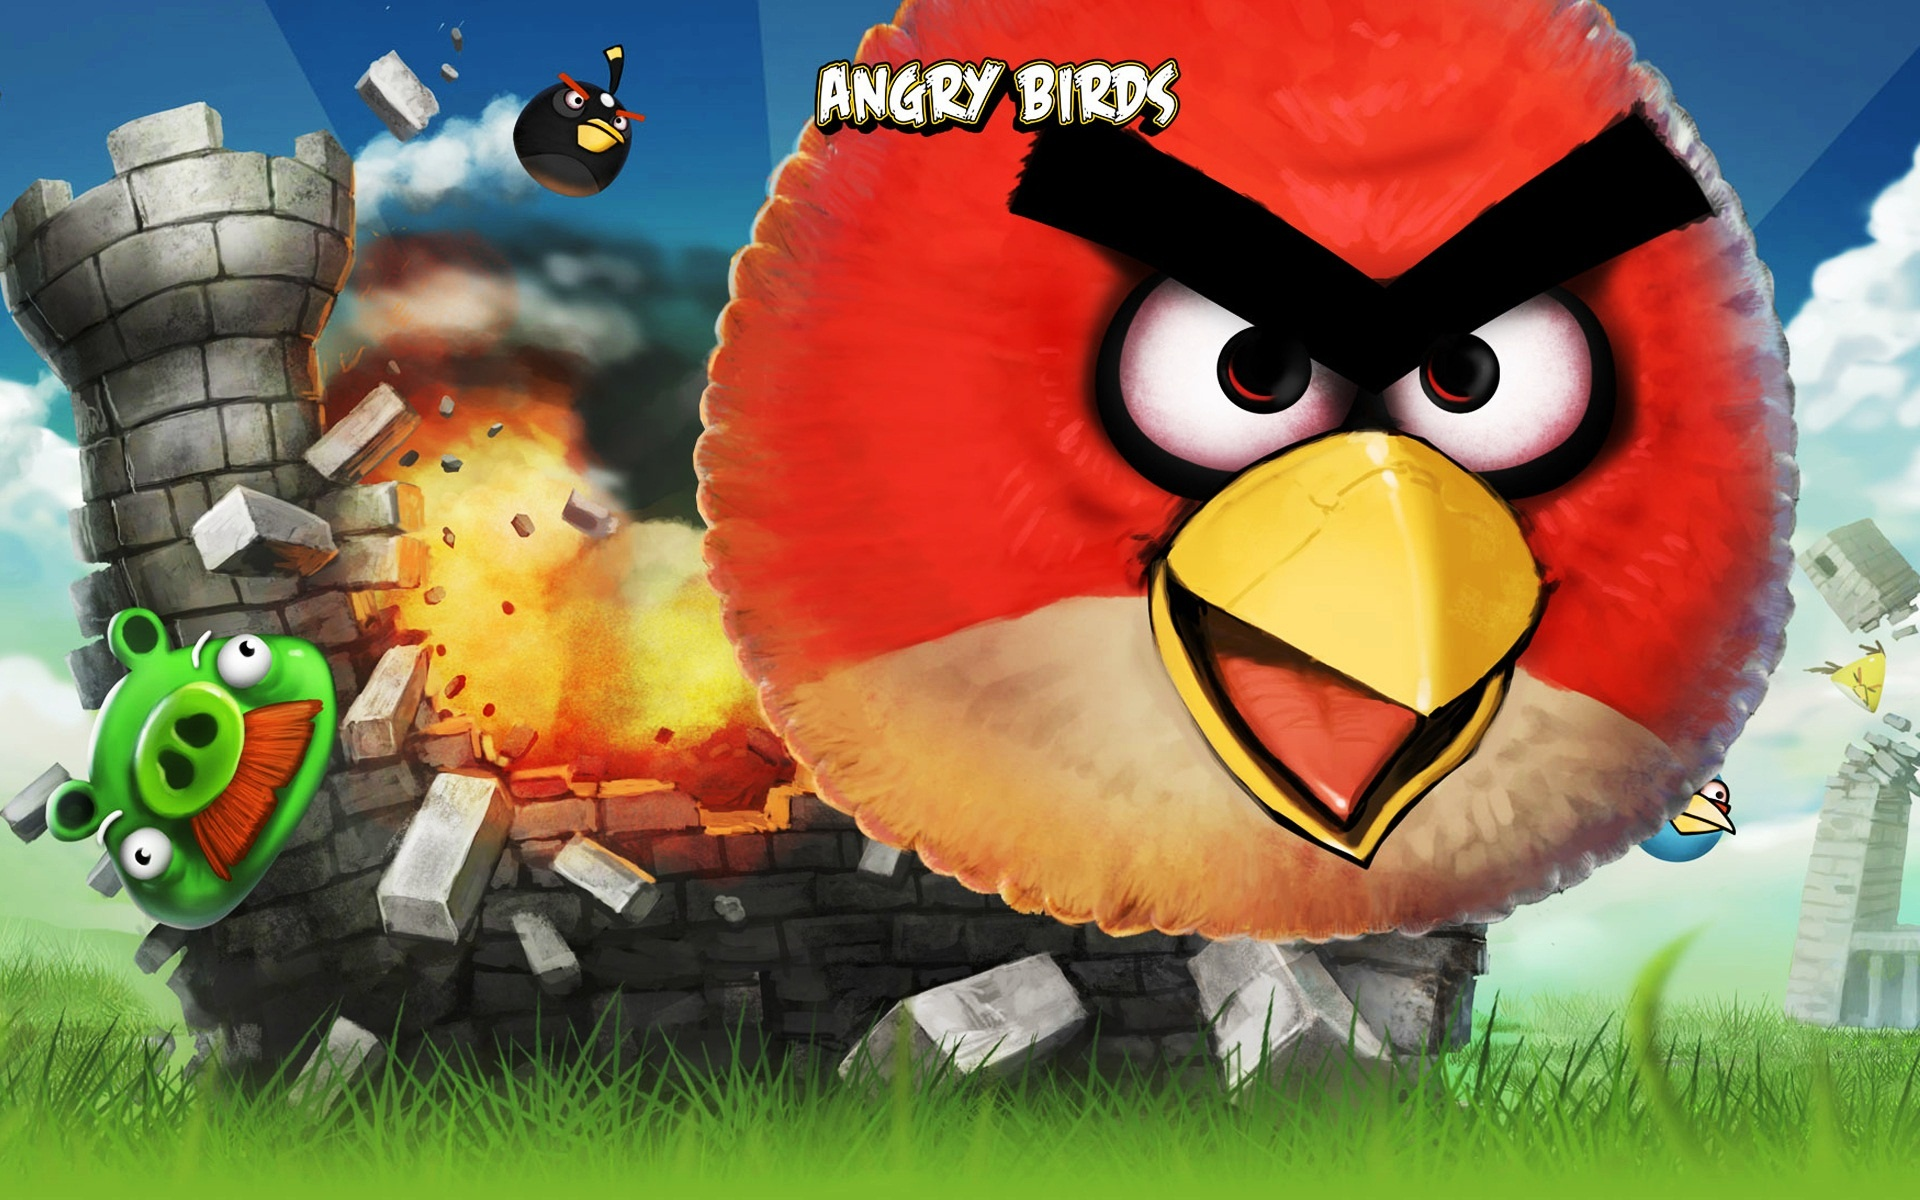 Angry Birds Iphone Game Wallpapers In Jpg Format For Free Download